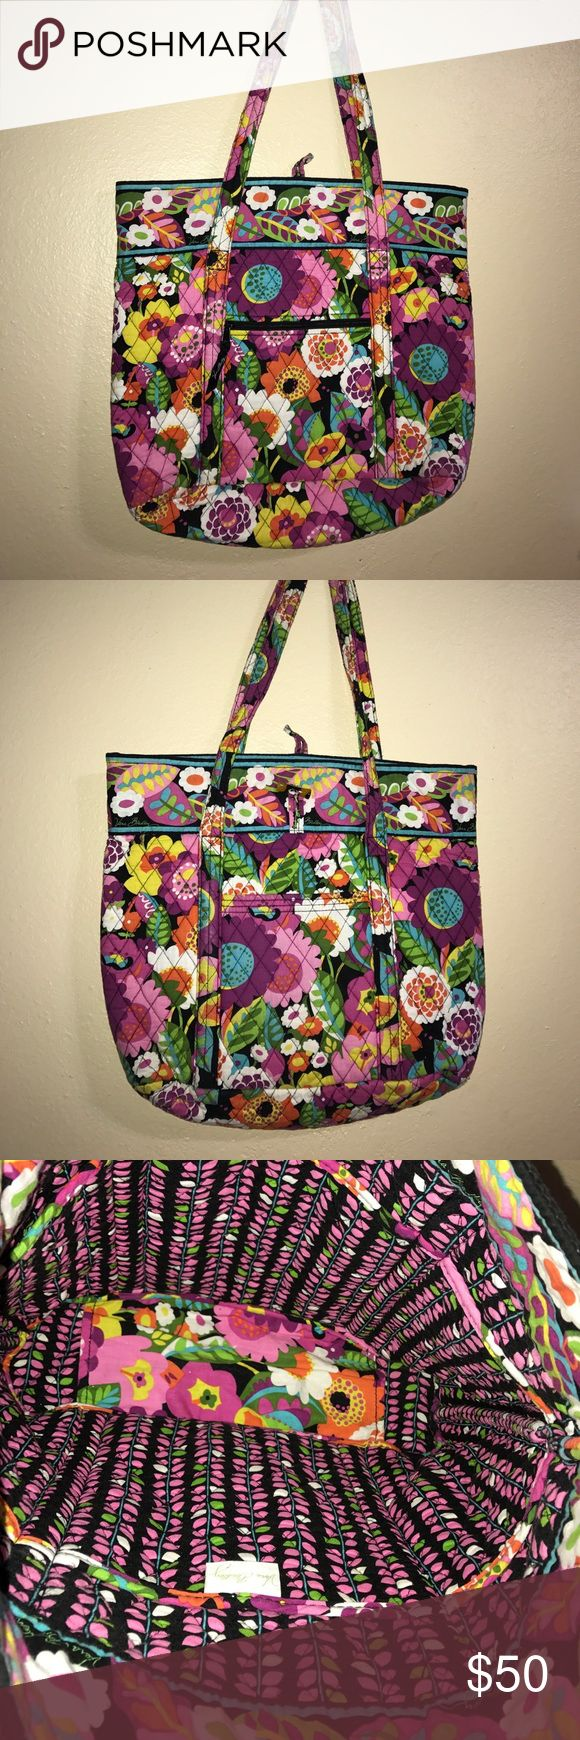 Vera Bradley tote bag Va Va Bloom pattern Used and has slight fading on handles. Retired pattern. Comes from a smoke-free home. Feel free to message me. Vera Bradley Bags Totes